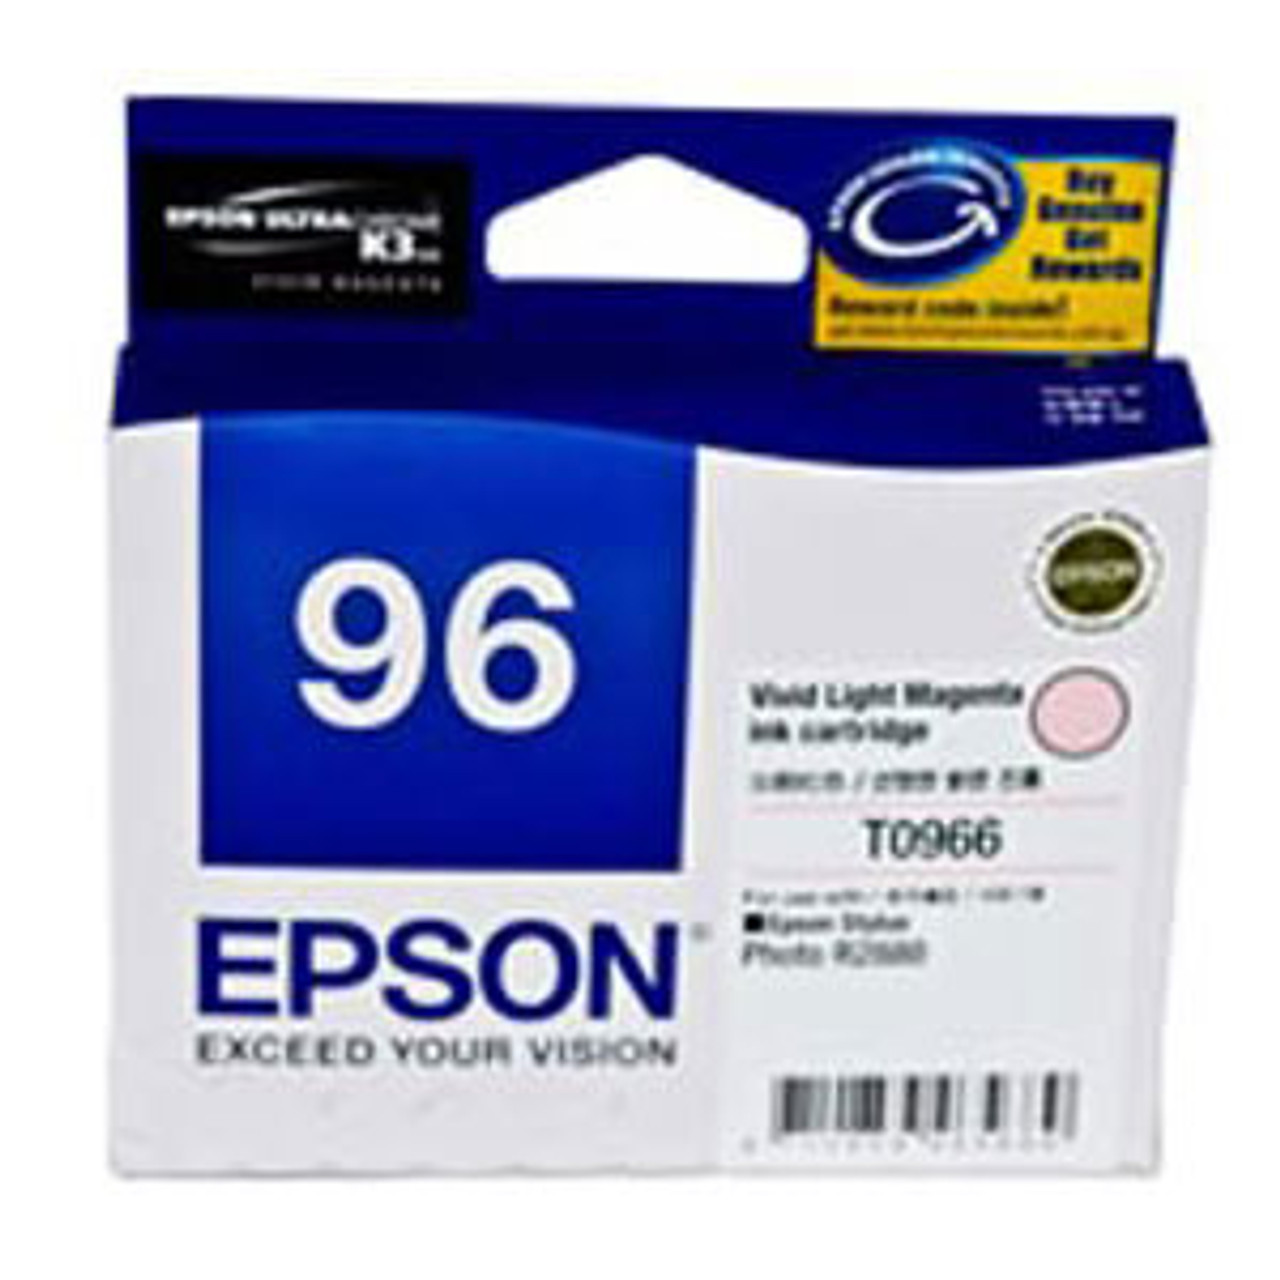 Image for Epson 96 - UltraChrome K3 Ink Cartridge Vivid Magenta 940 pages CX Computer Superstore